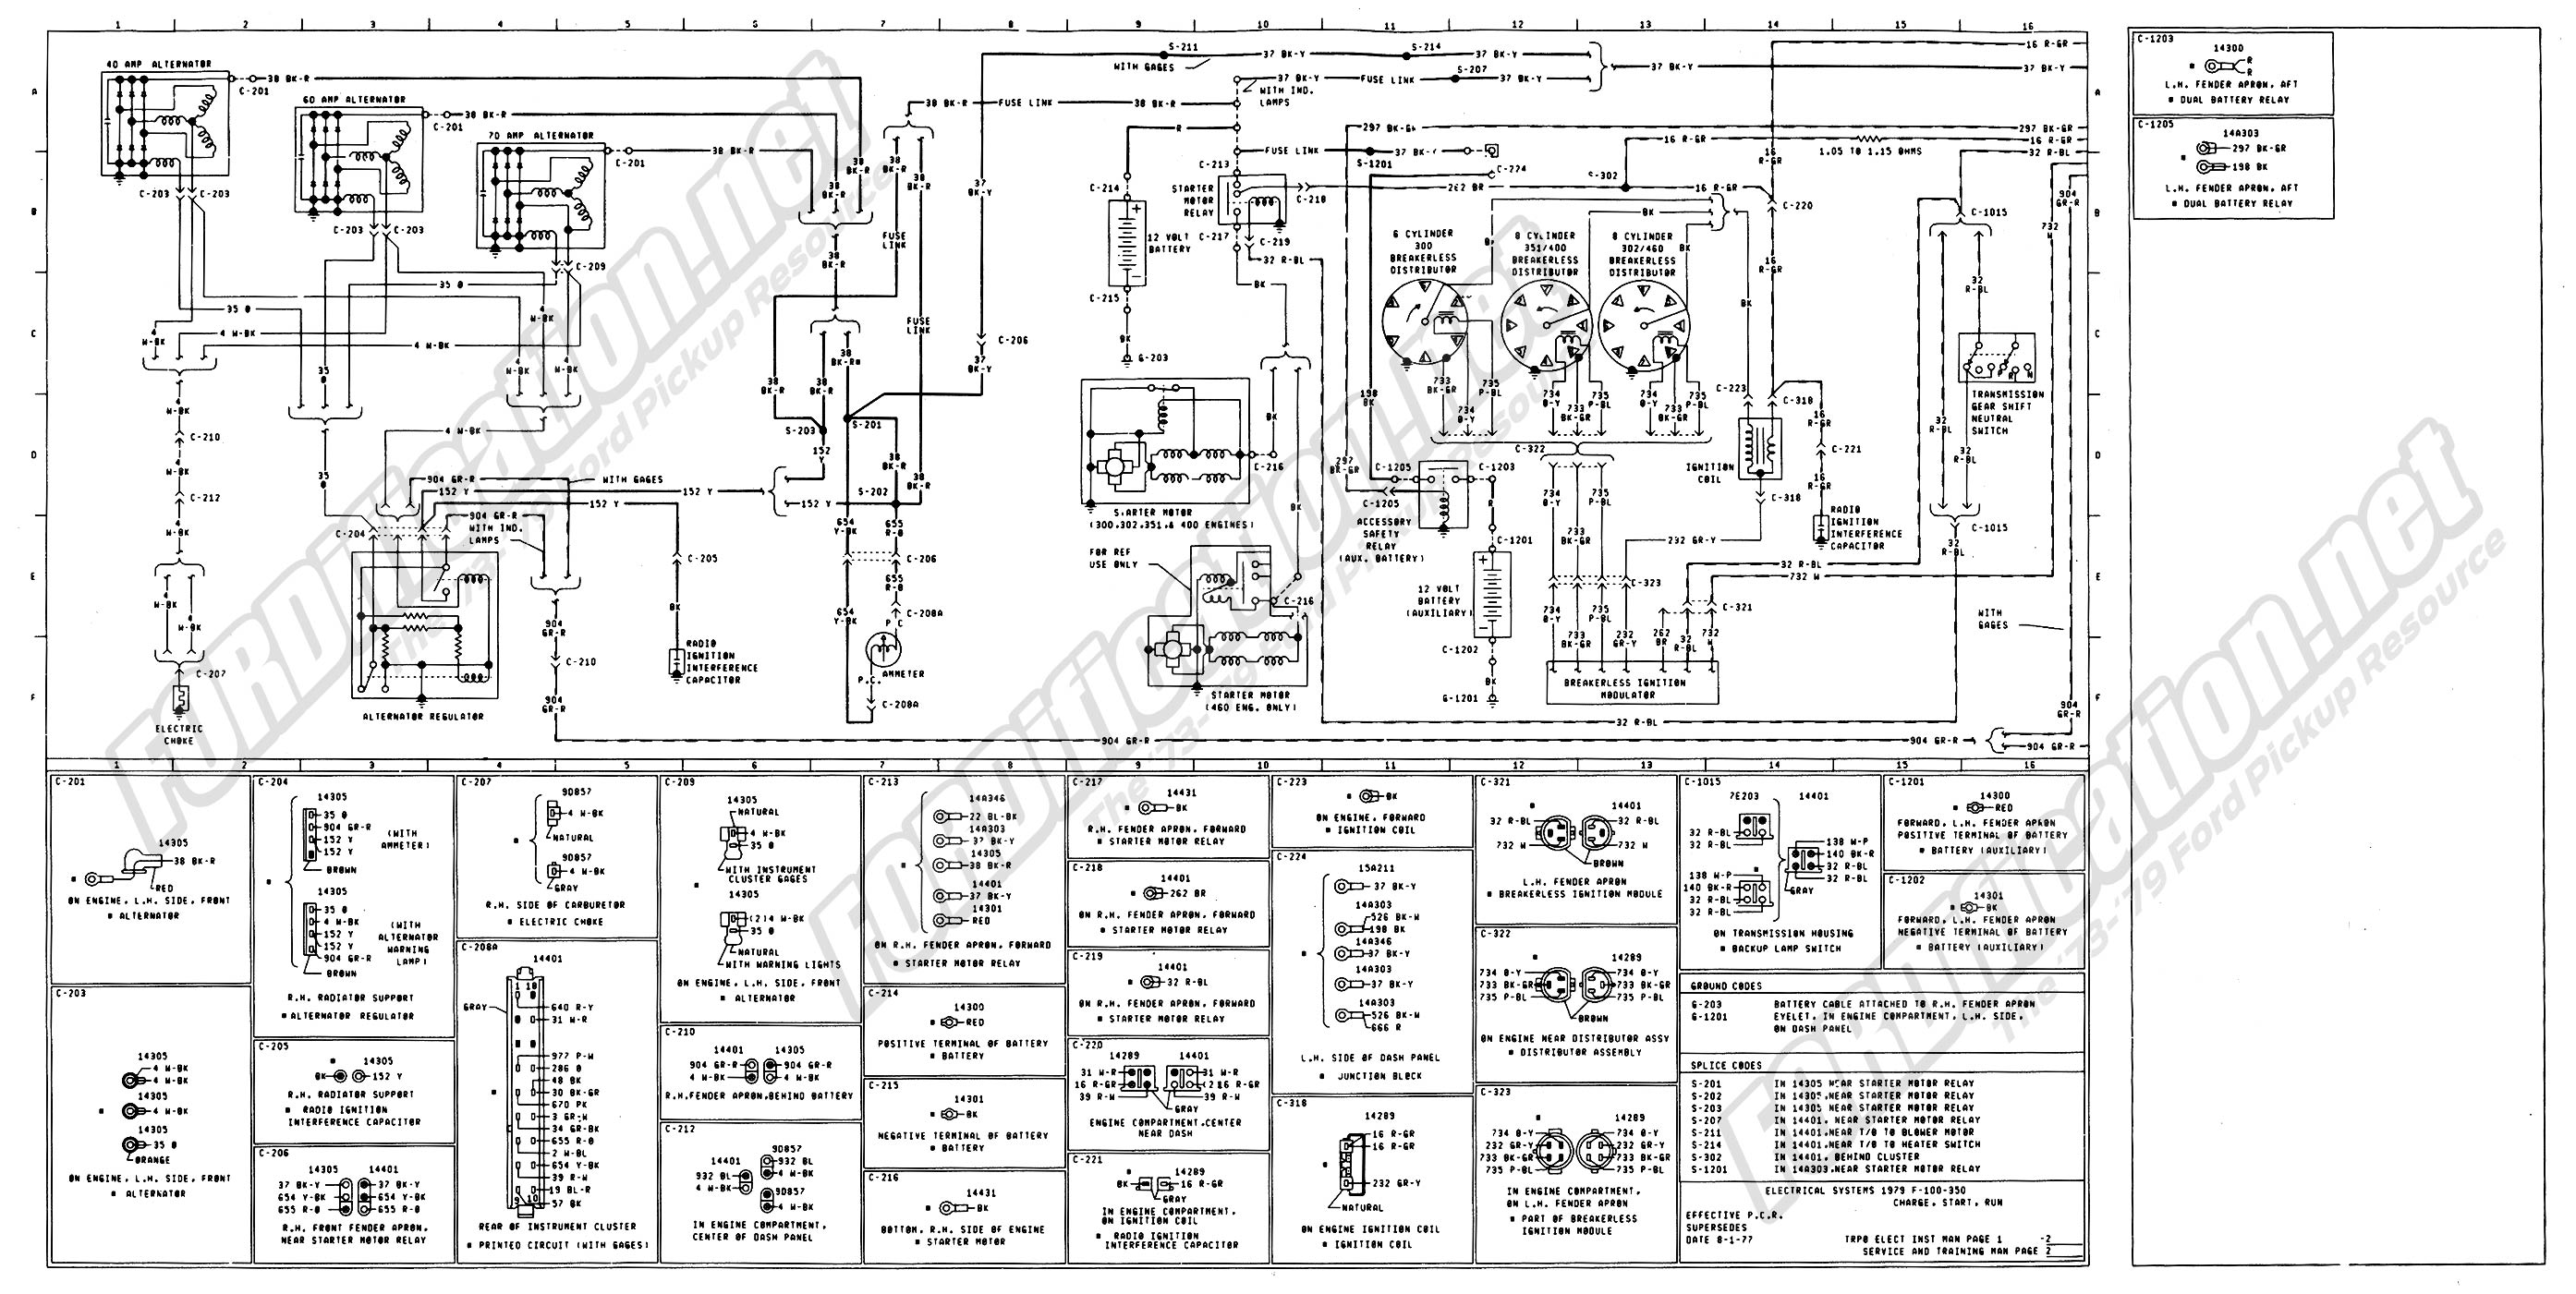 wiring_79master_2of9 1973 1979 ford truck wiring diagrams & schematics fordification net ford f150 wiring schematic at suagrazia.org